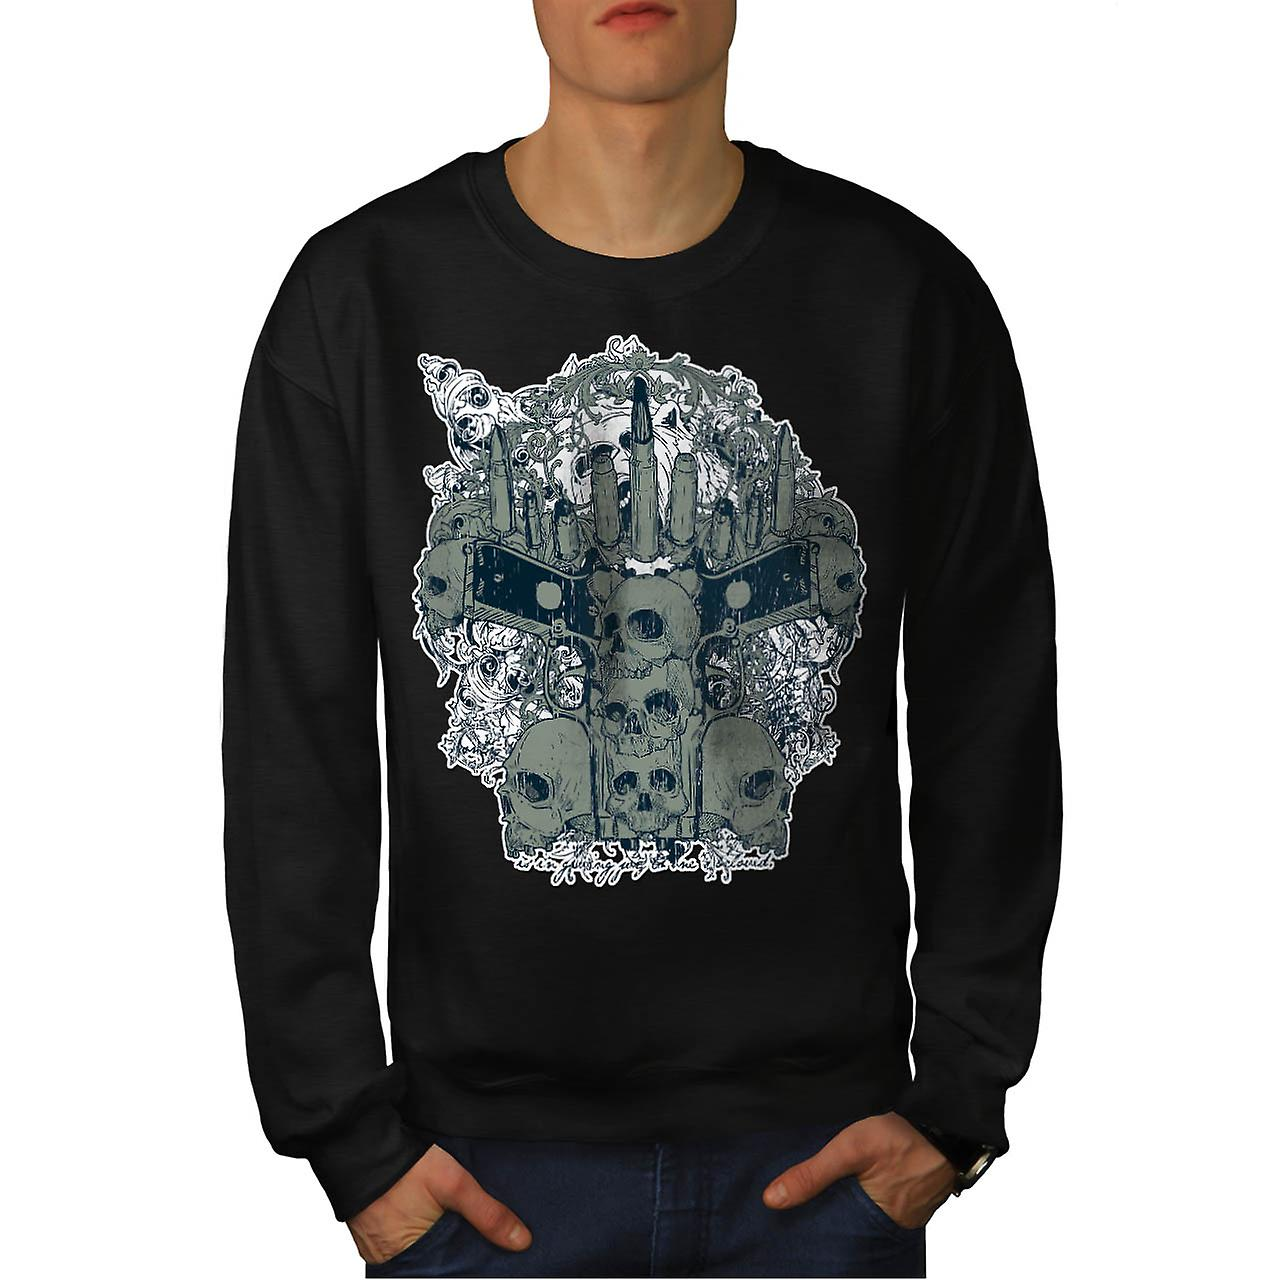 Gang Land Skull Guns Street Cred Men Black Sweatshirt | Wellcoda